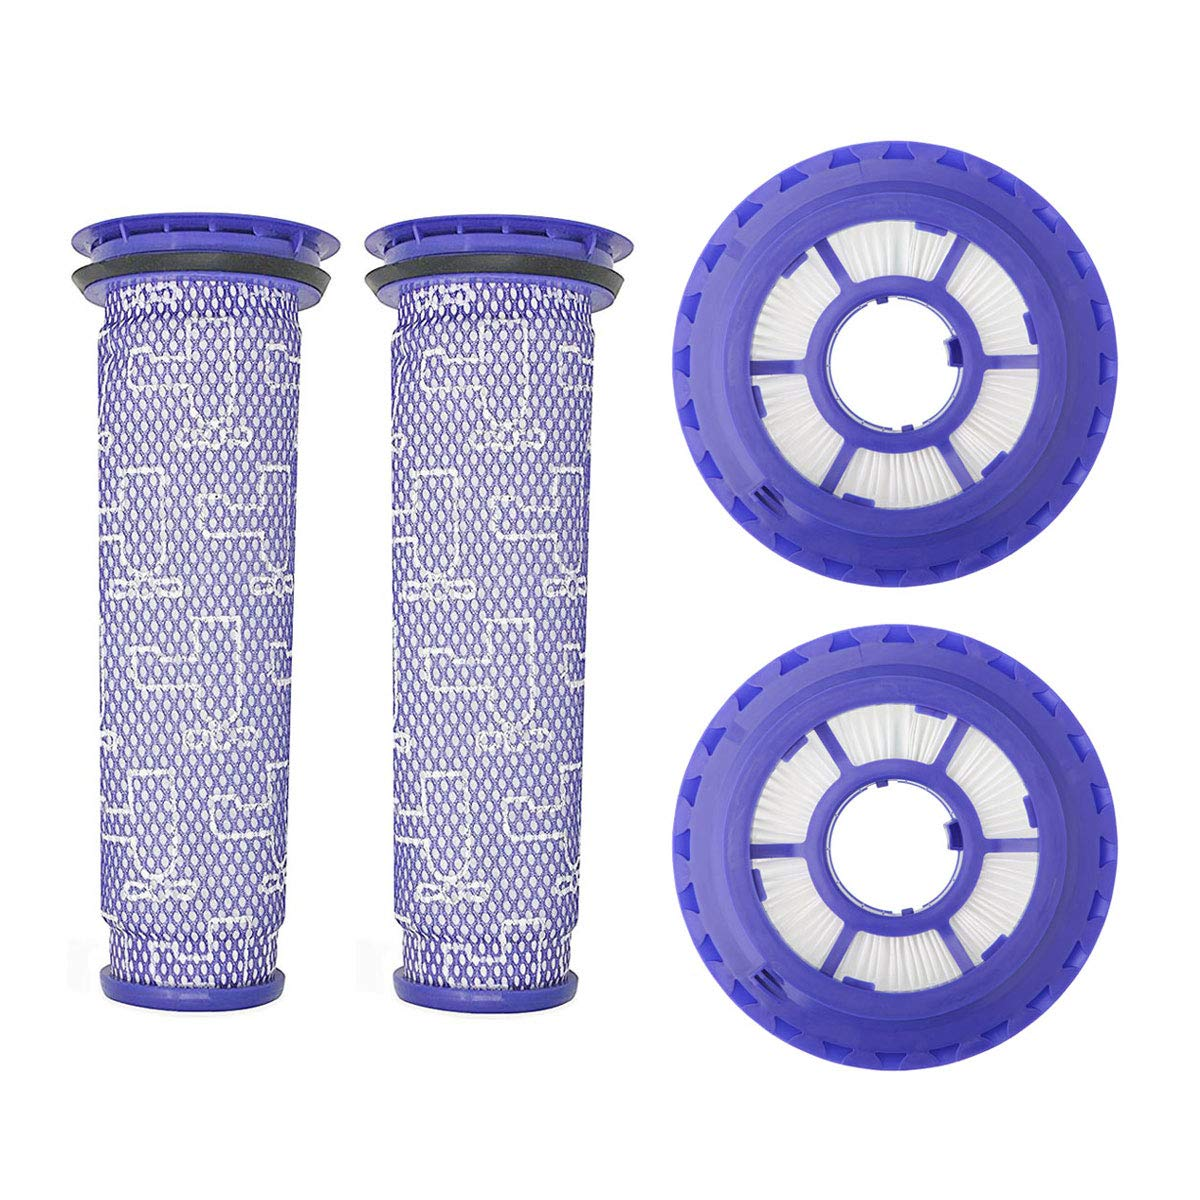 Lemige 2 Pack HEPA Post Filters & 2 Pack Pre Filters Replacement for Dyson DC65 DC66 DC41 Animal, Multi Floor and Ball Vacuums, Compare to Part 920769-01&920640-01 by Lemige